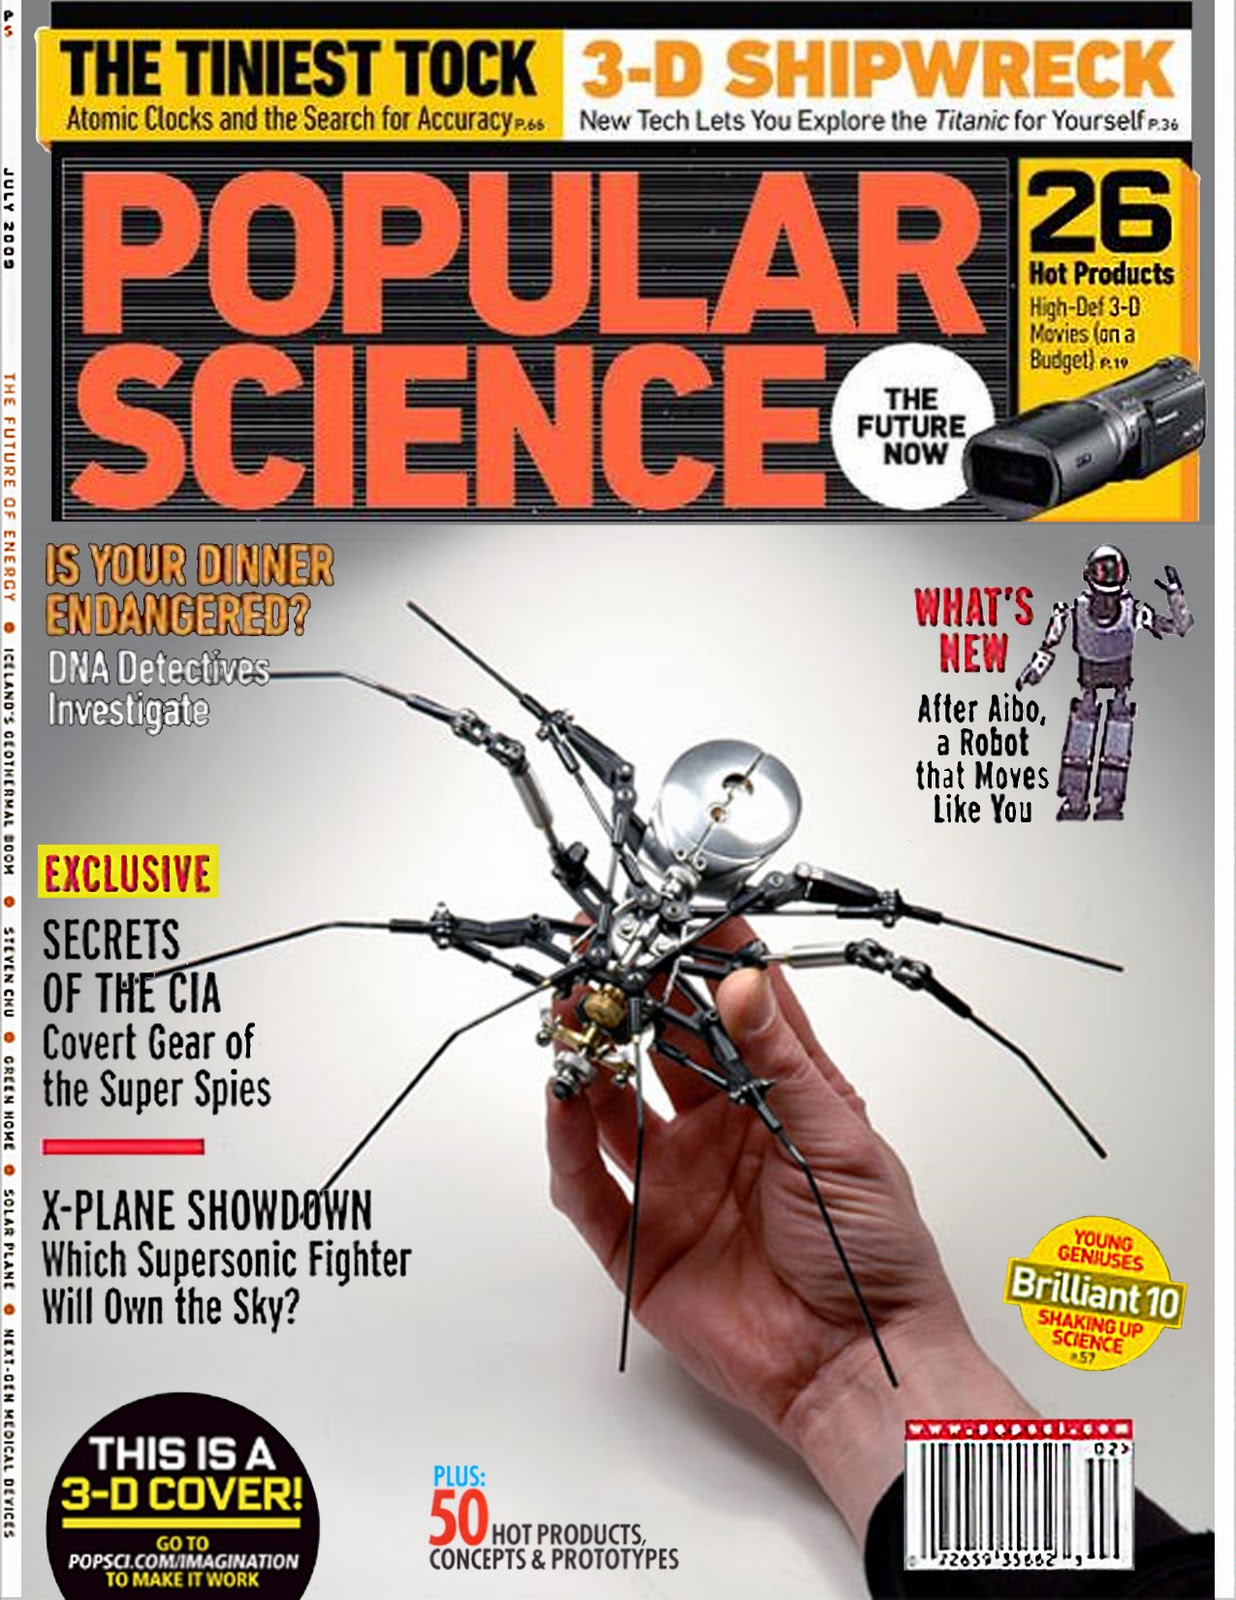 science magazine popular magazines bob covers scientific wired schrupp american competitors robotics apple